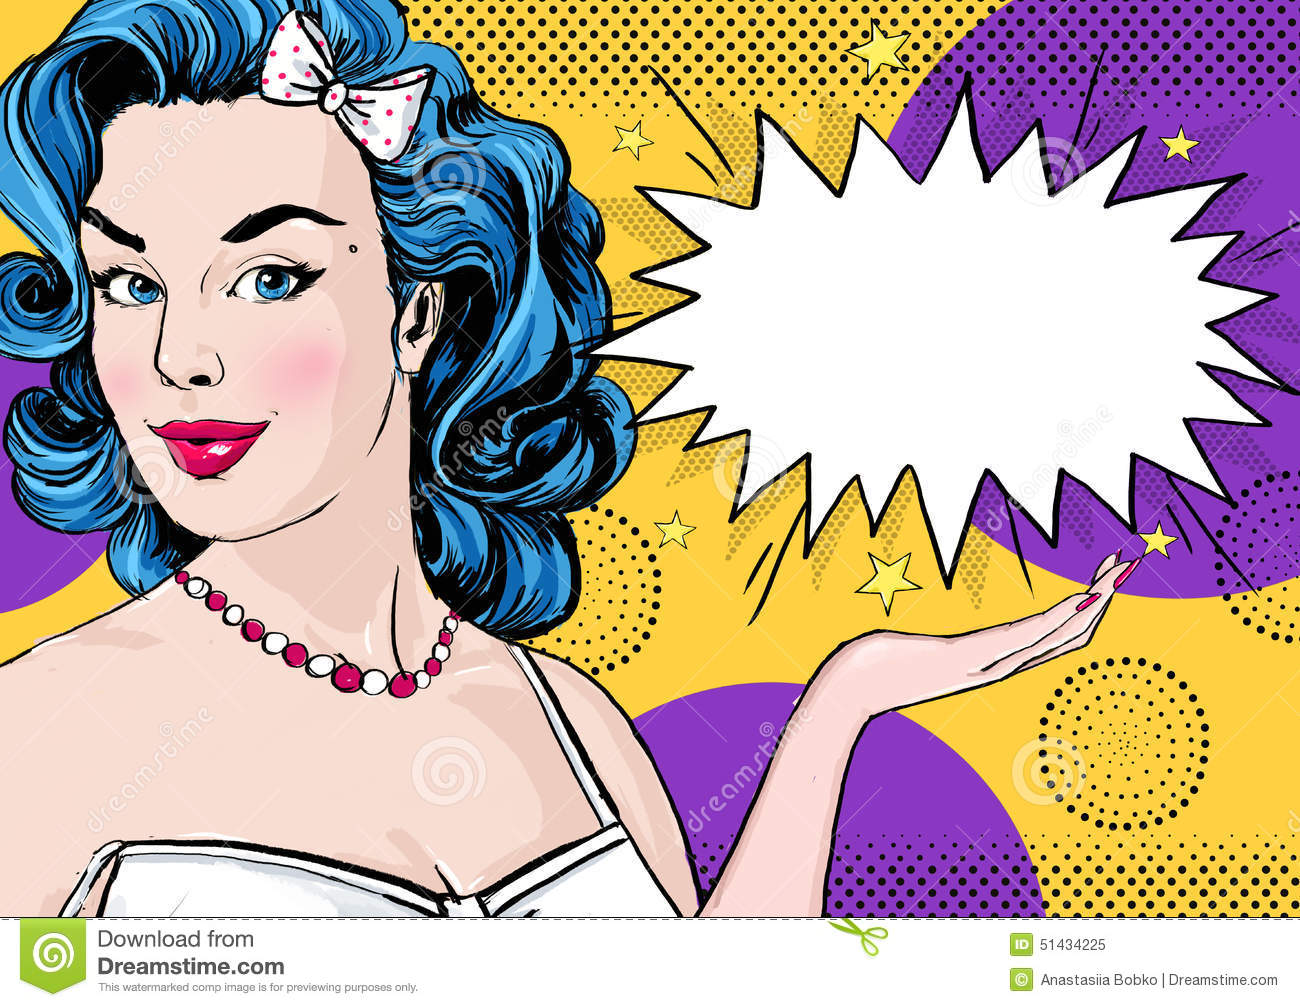 Vintage Pop Art Girl Royalty Free Stock Photo - Image: 30482115